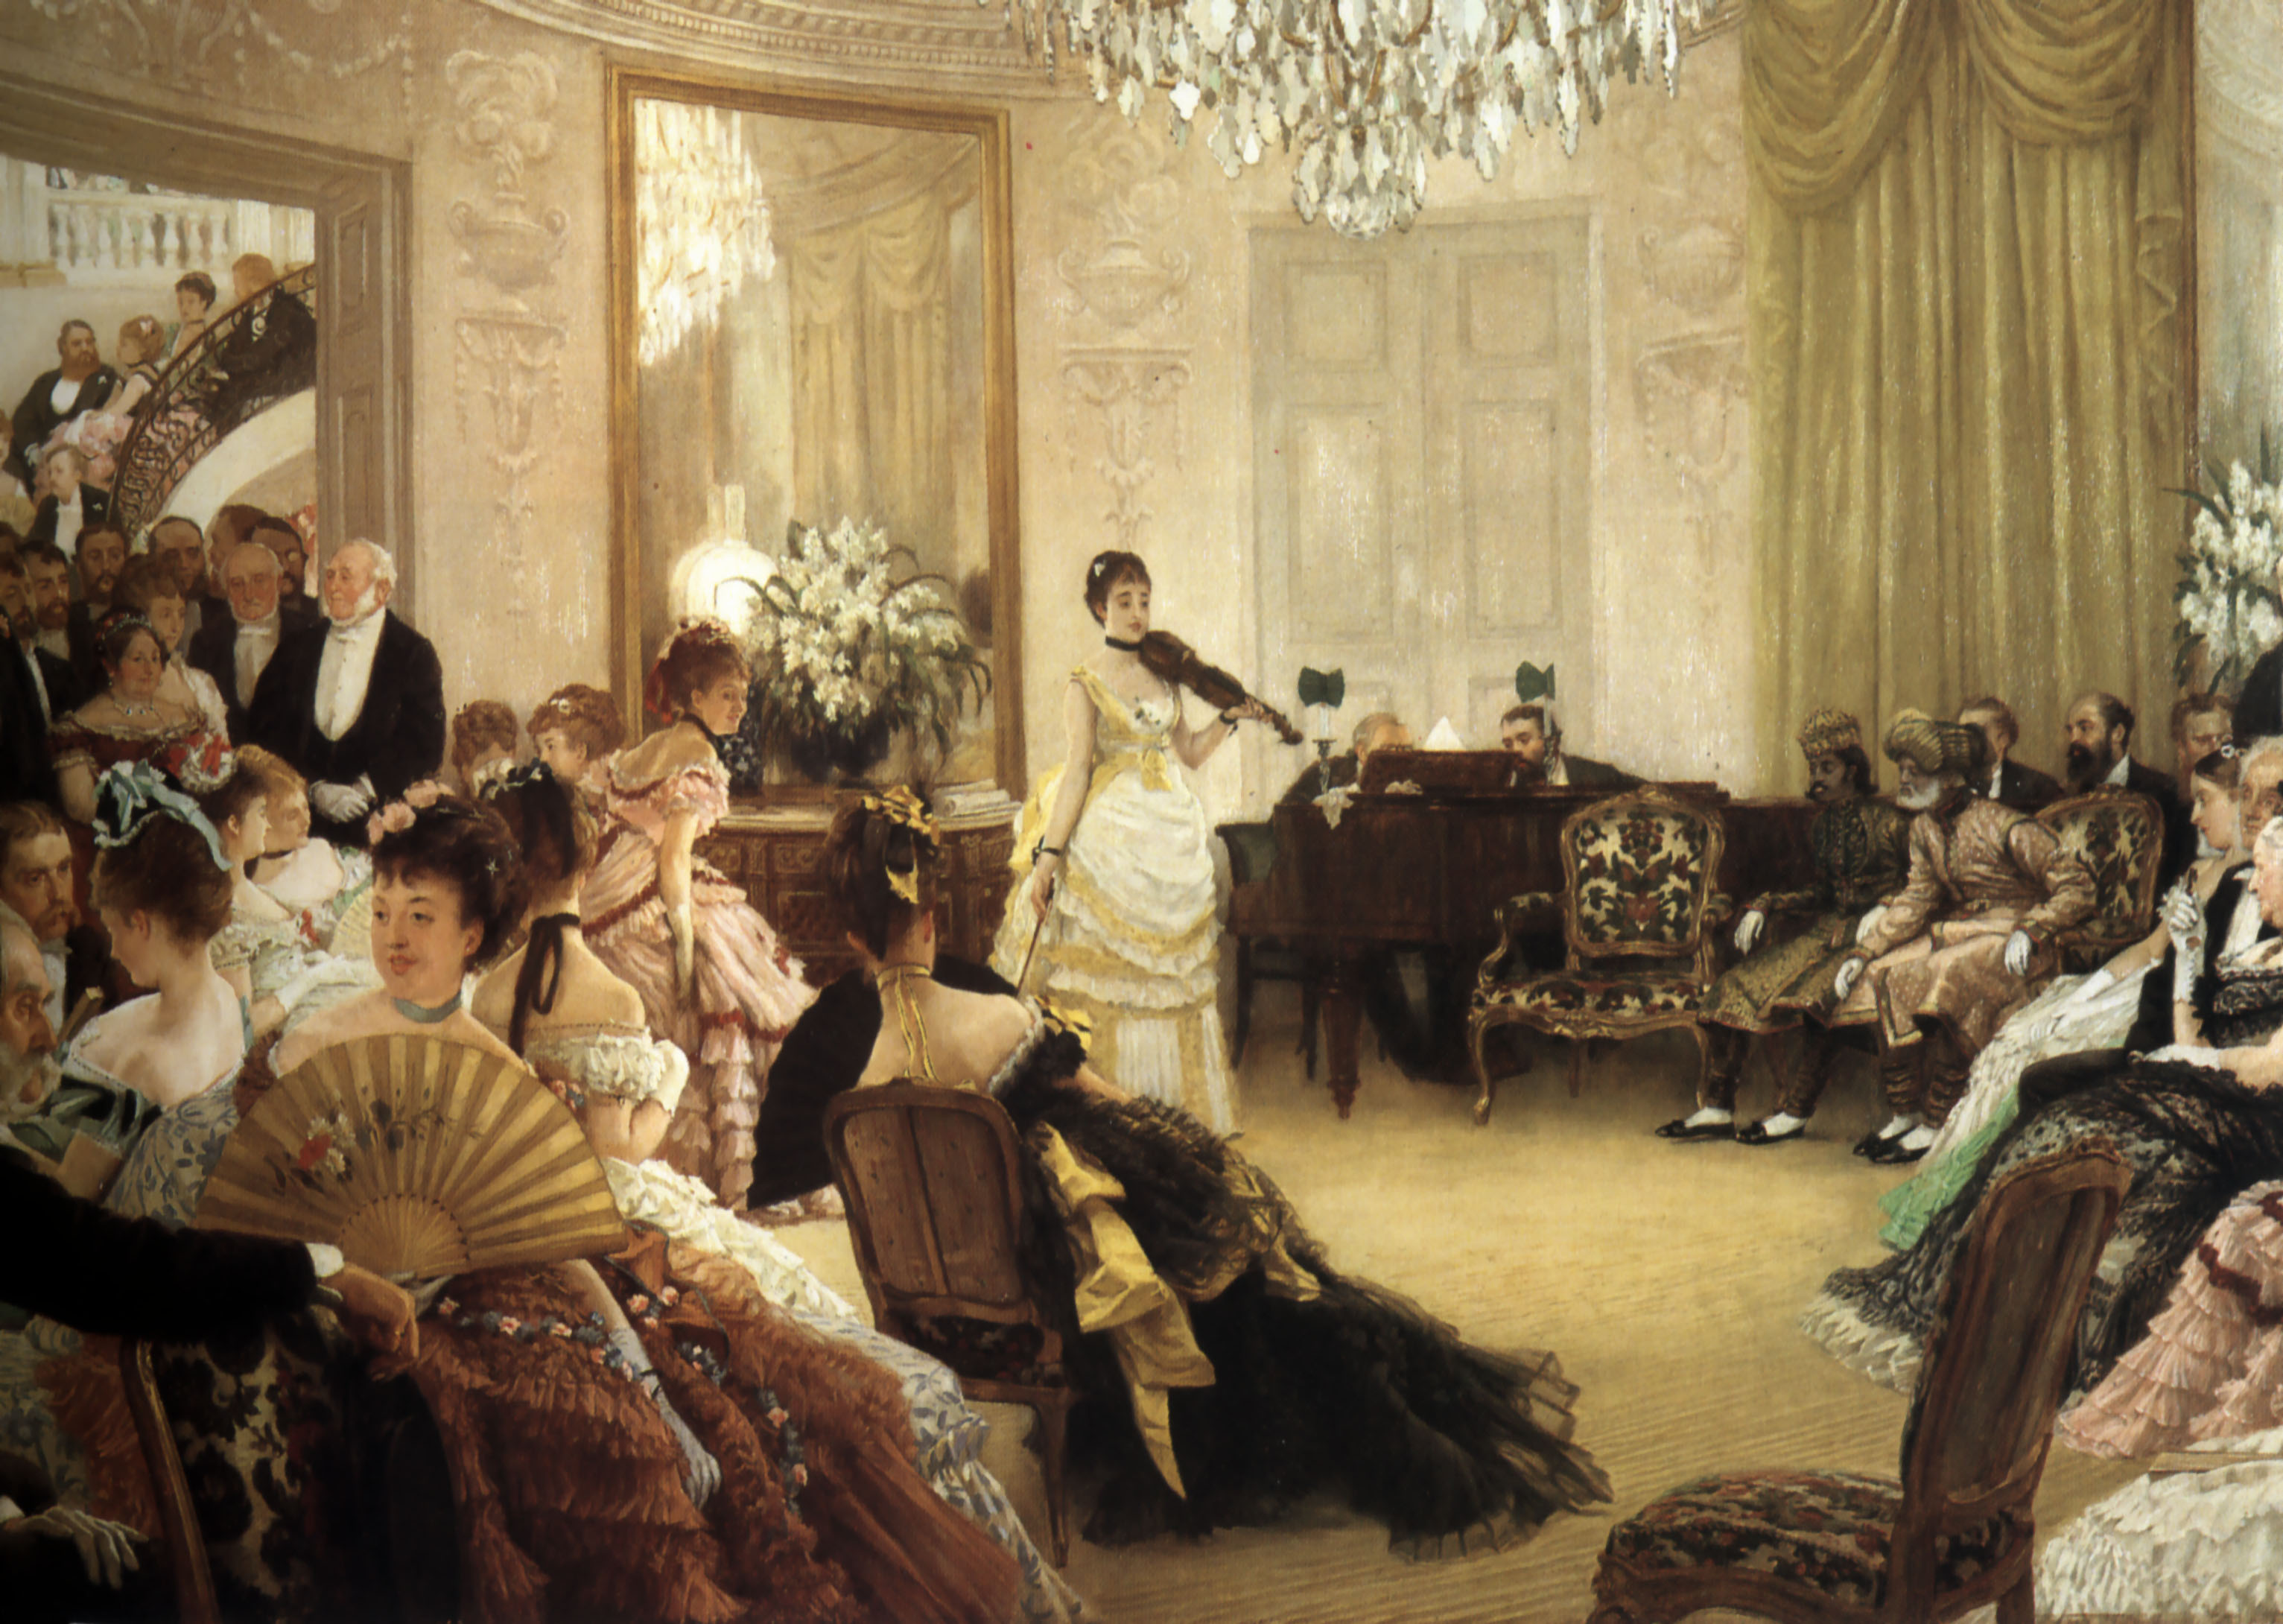 https://lucidabsinthe.files.wordpress.com/2013/04/james-tissot-22hush22-c-1875.jpg